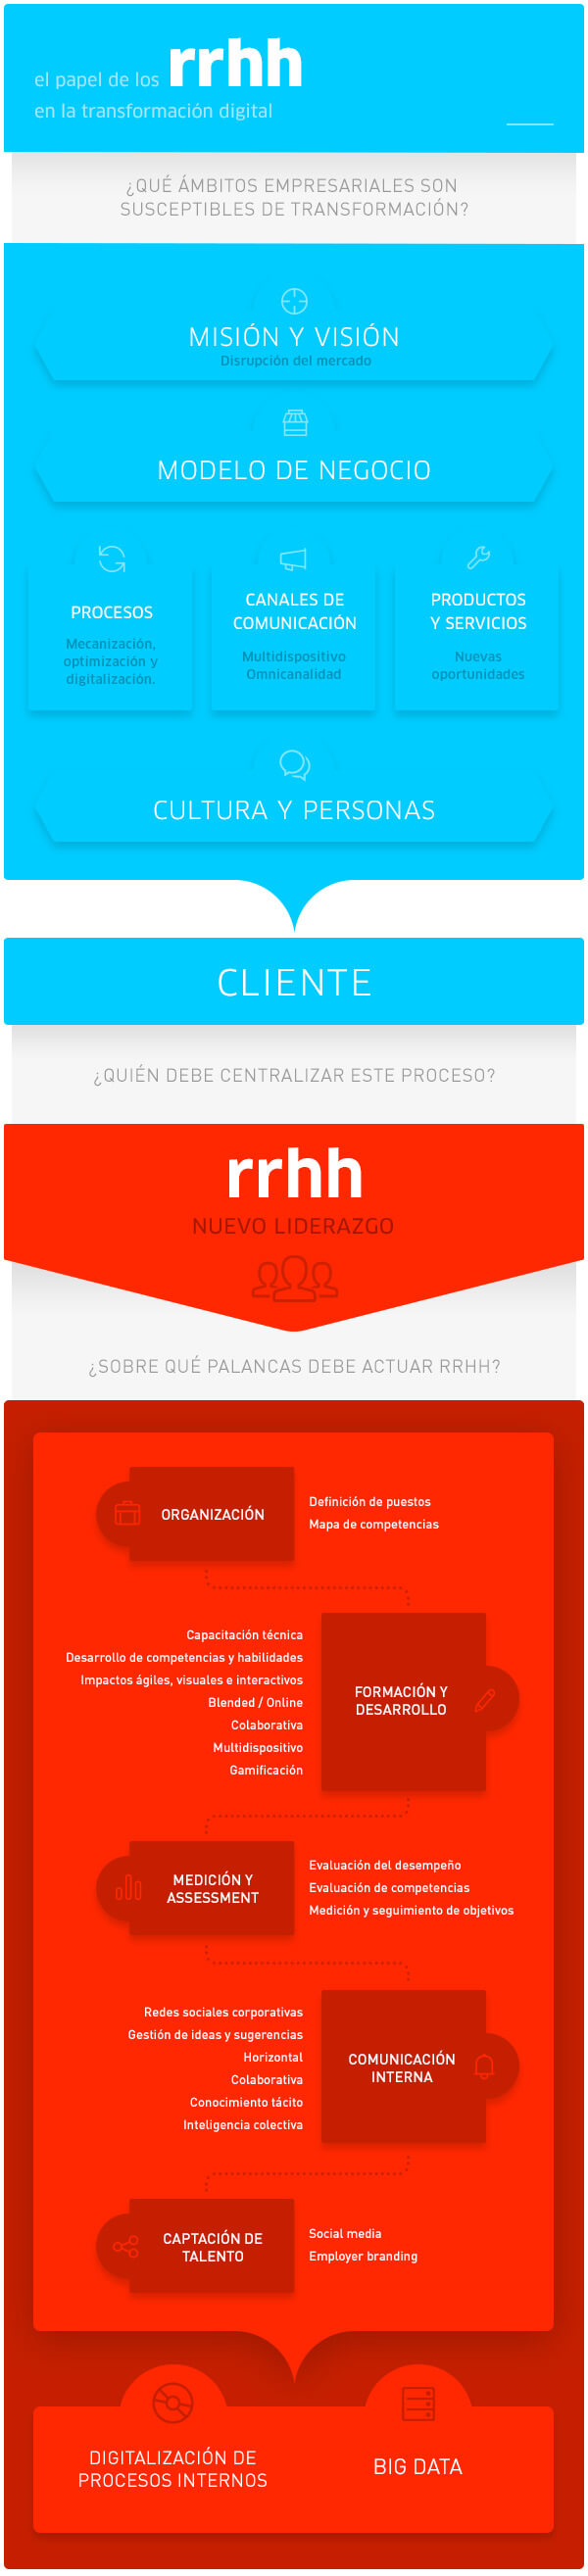 Papel-RRHH-Transformacion-Digital-infografia